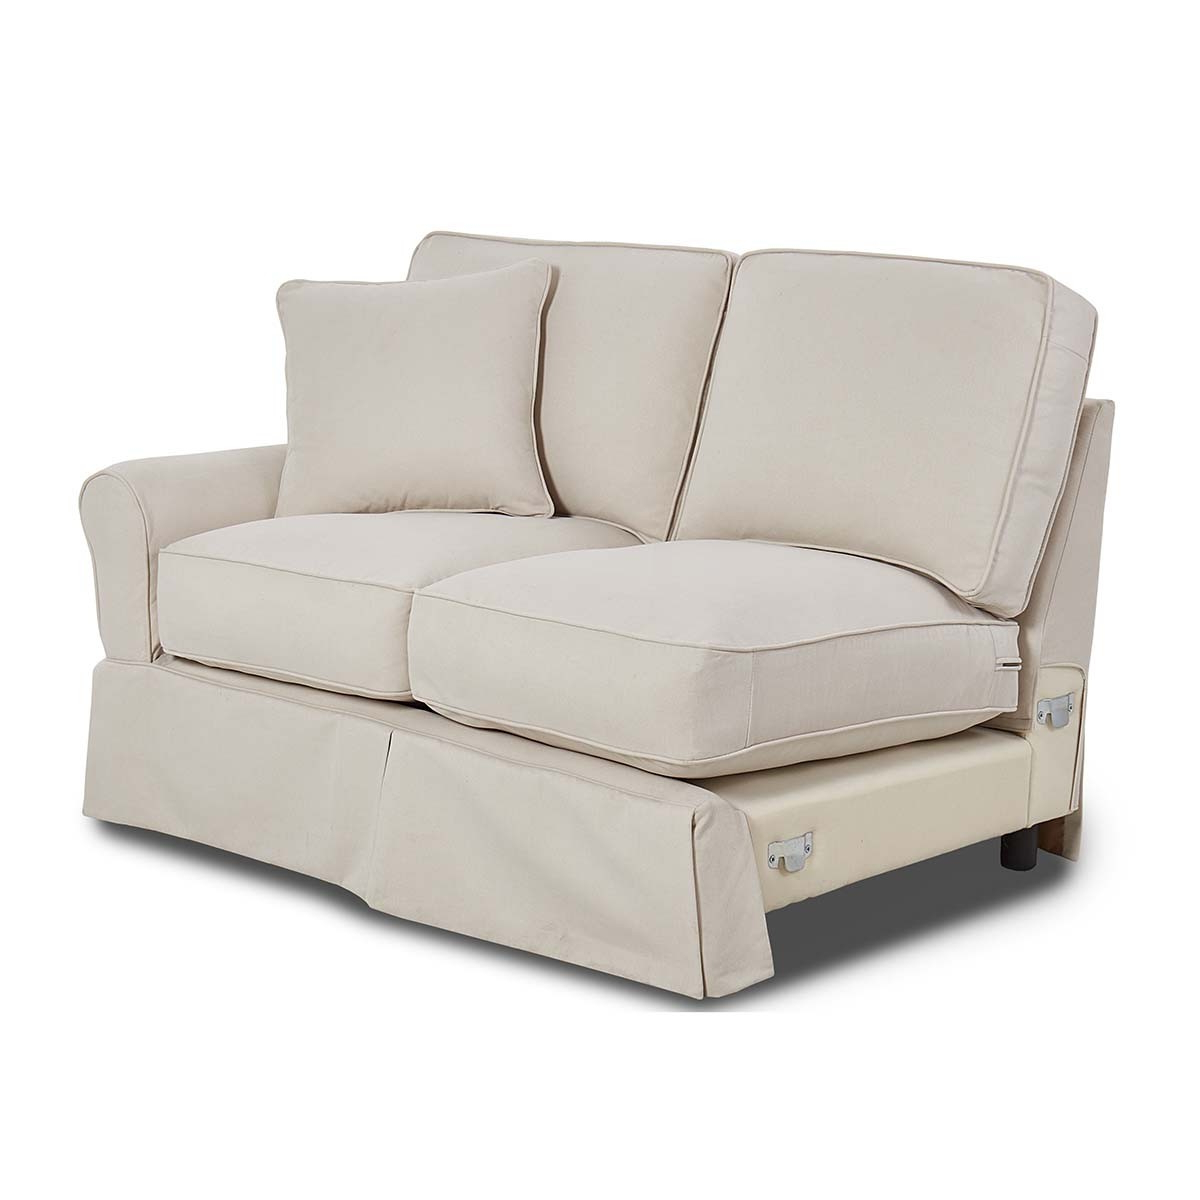 Most Recent Turdur 2 Piece Sectionals With Raf Loveseat Regarding Knightsbridge Sectional (View 16 of 20)